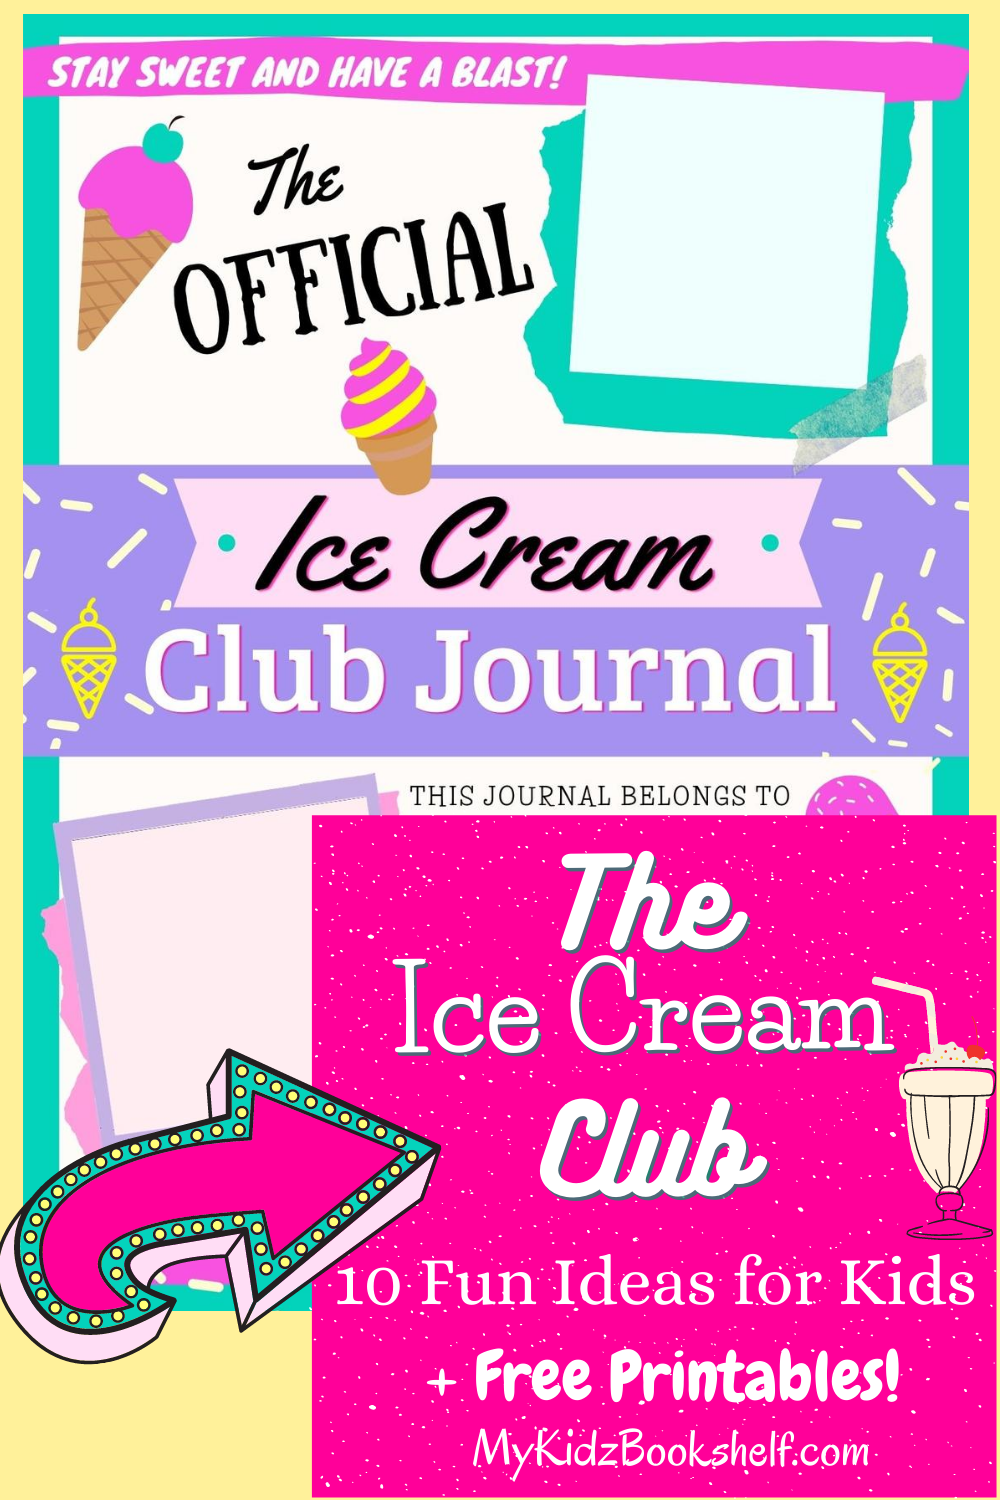 The Ice Cream Club Pinterest pin - 10 Fun Ideas for Kids and Free Printables